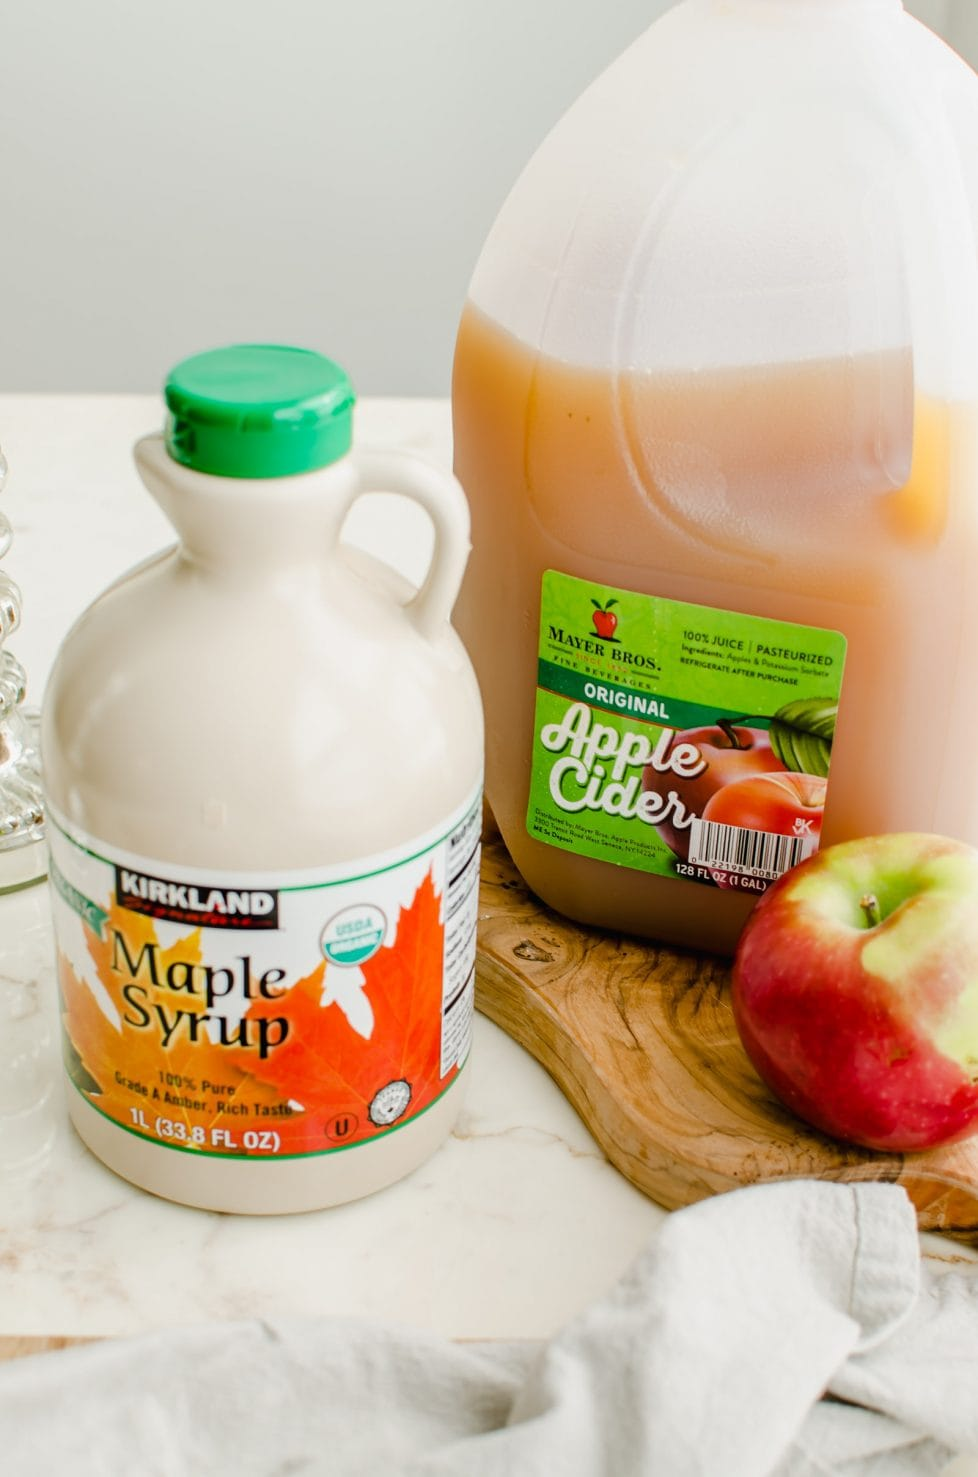 A jug of apple cider, bottle of maple syrup, and an apple sitting on a cutting board.